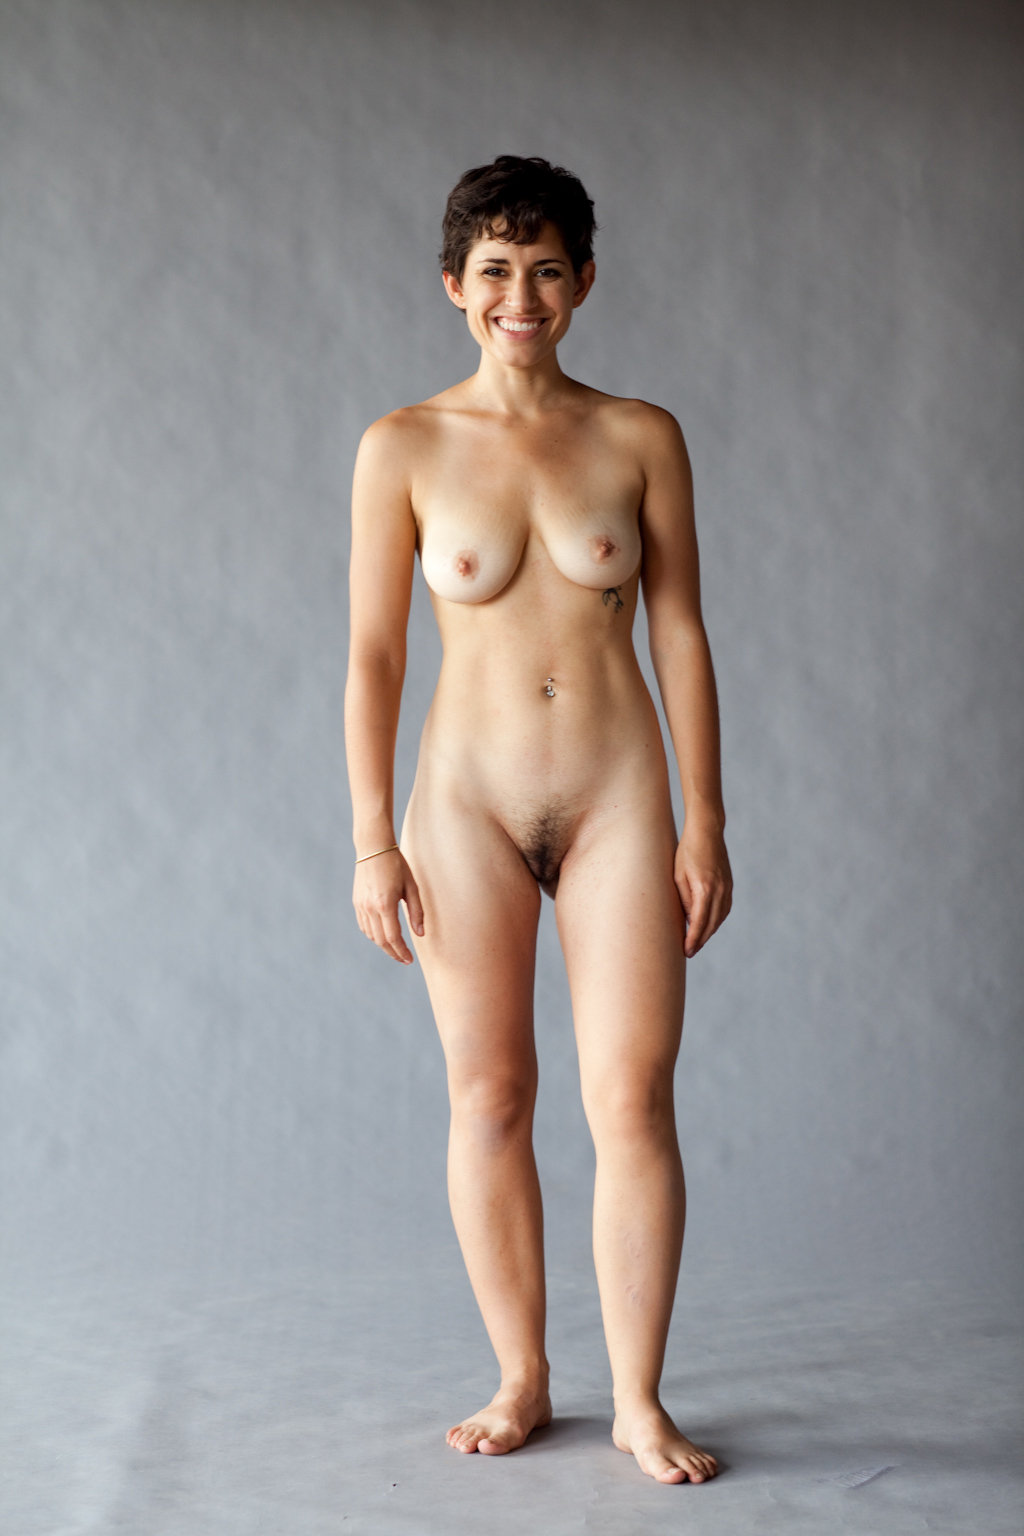 Modelling in the nude